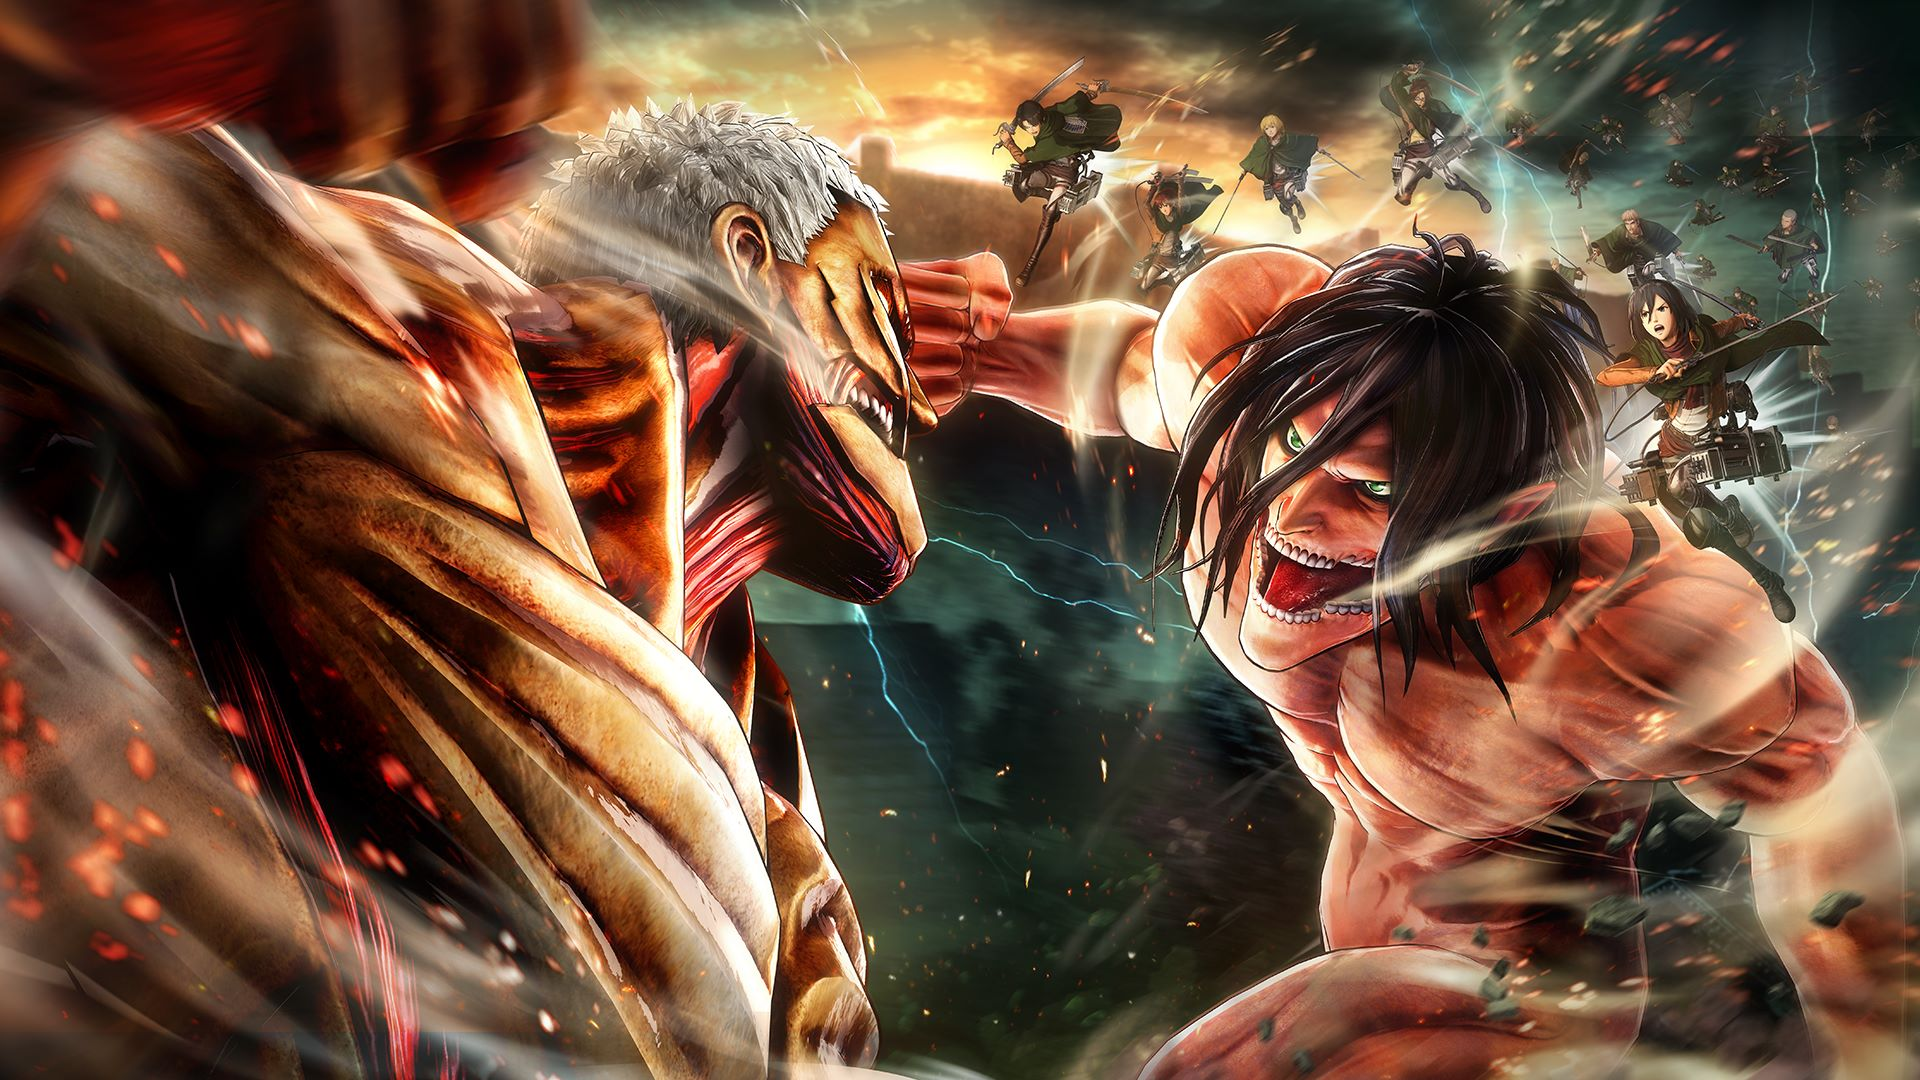 Attack on Titan chapter 118 release date spoiler